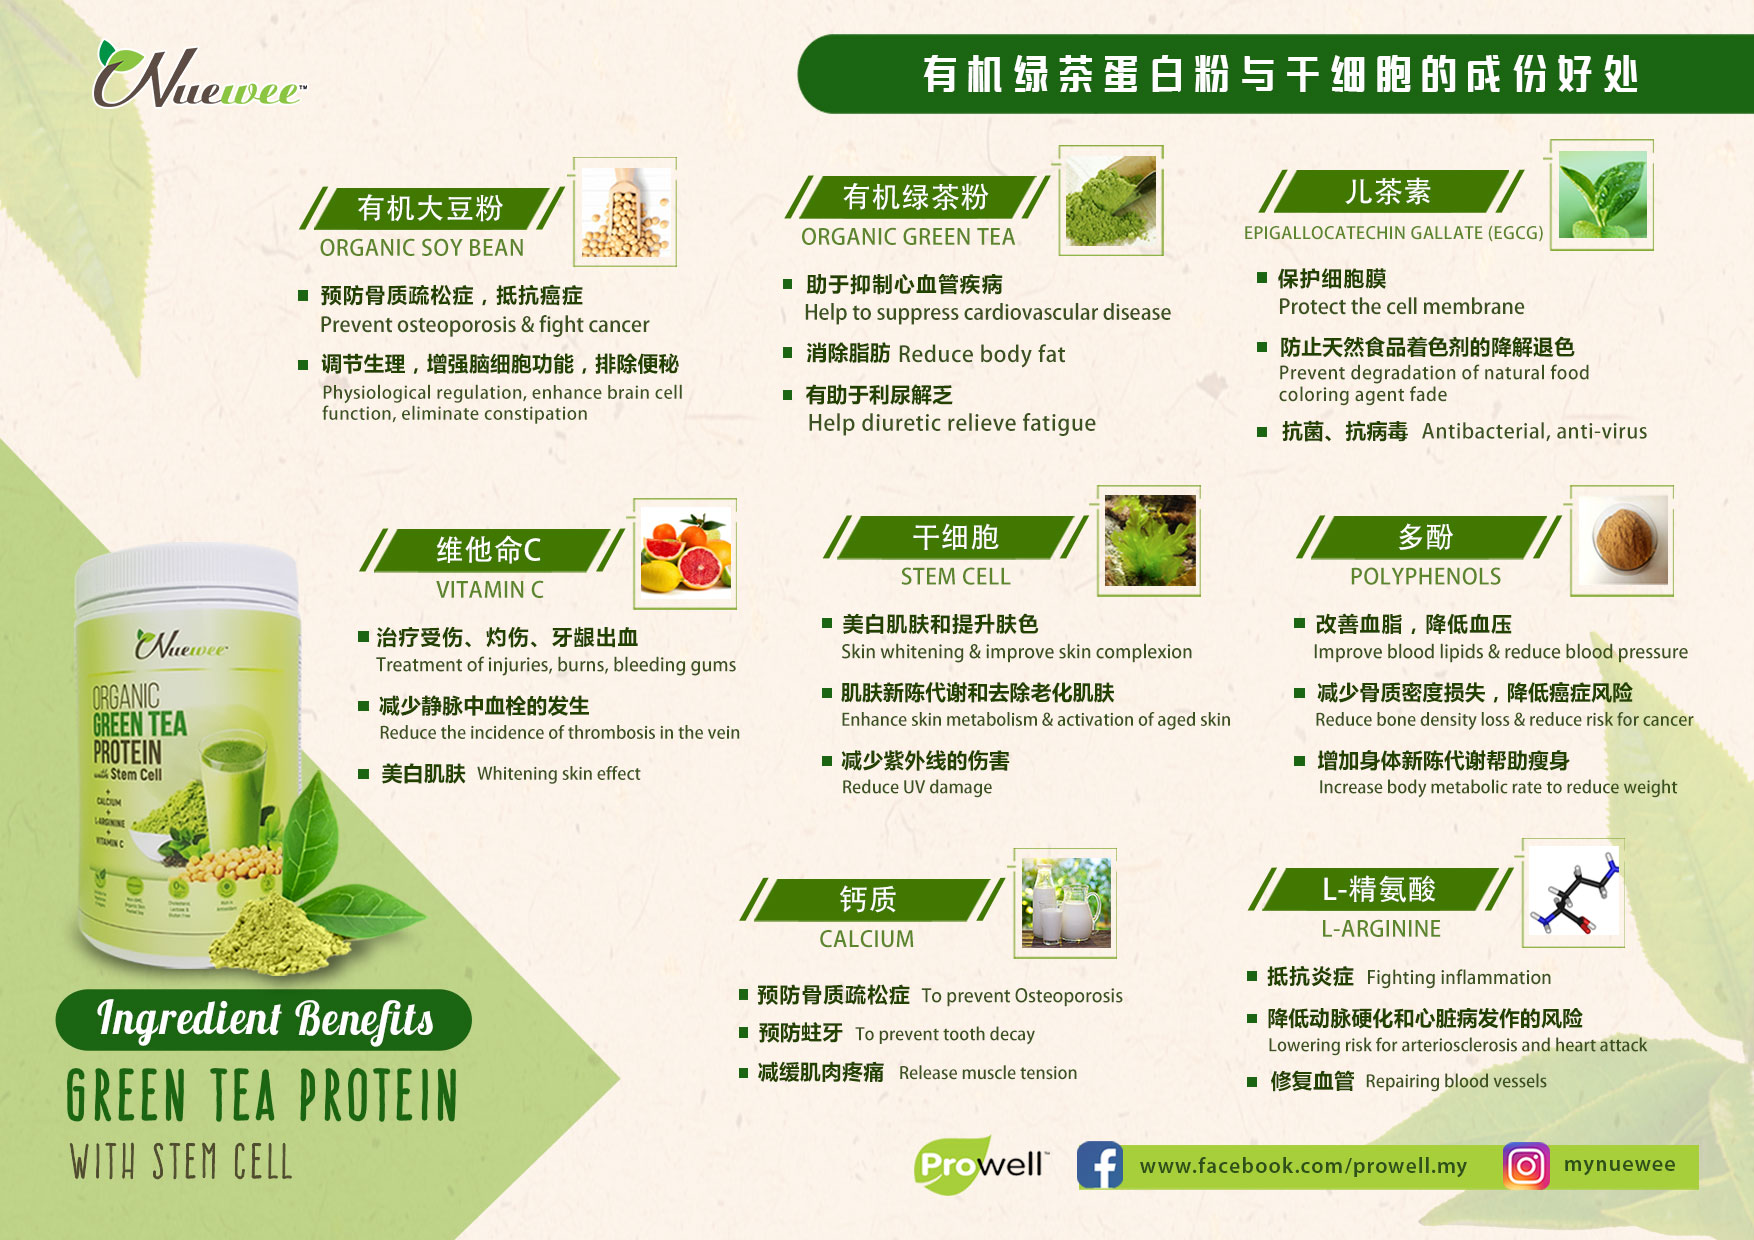 Ingredients of Nuewee Organic Green Tea Protein with Stem Cell.jpg